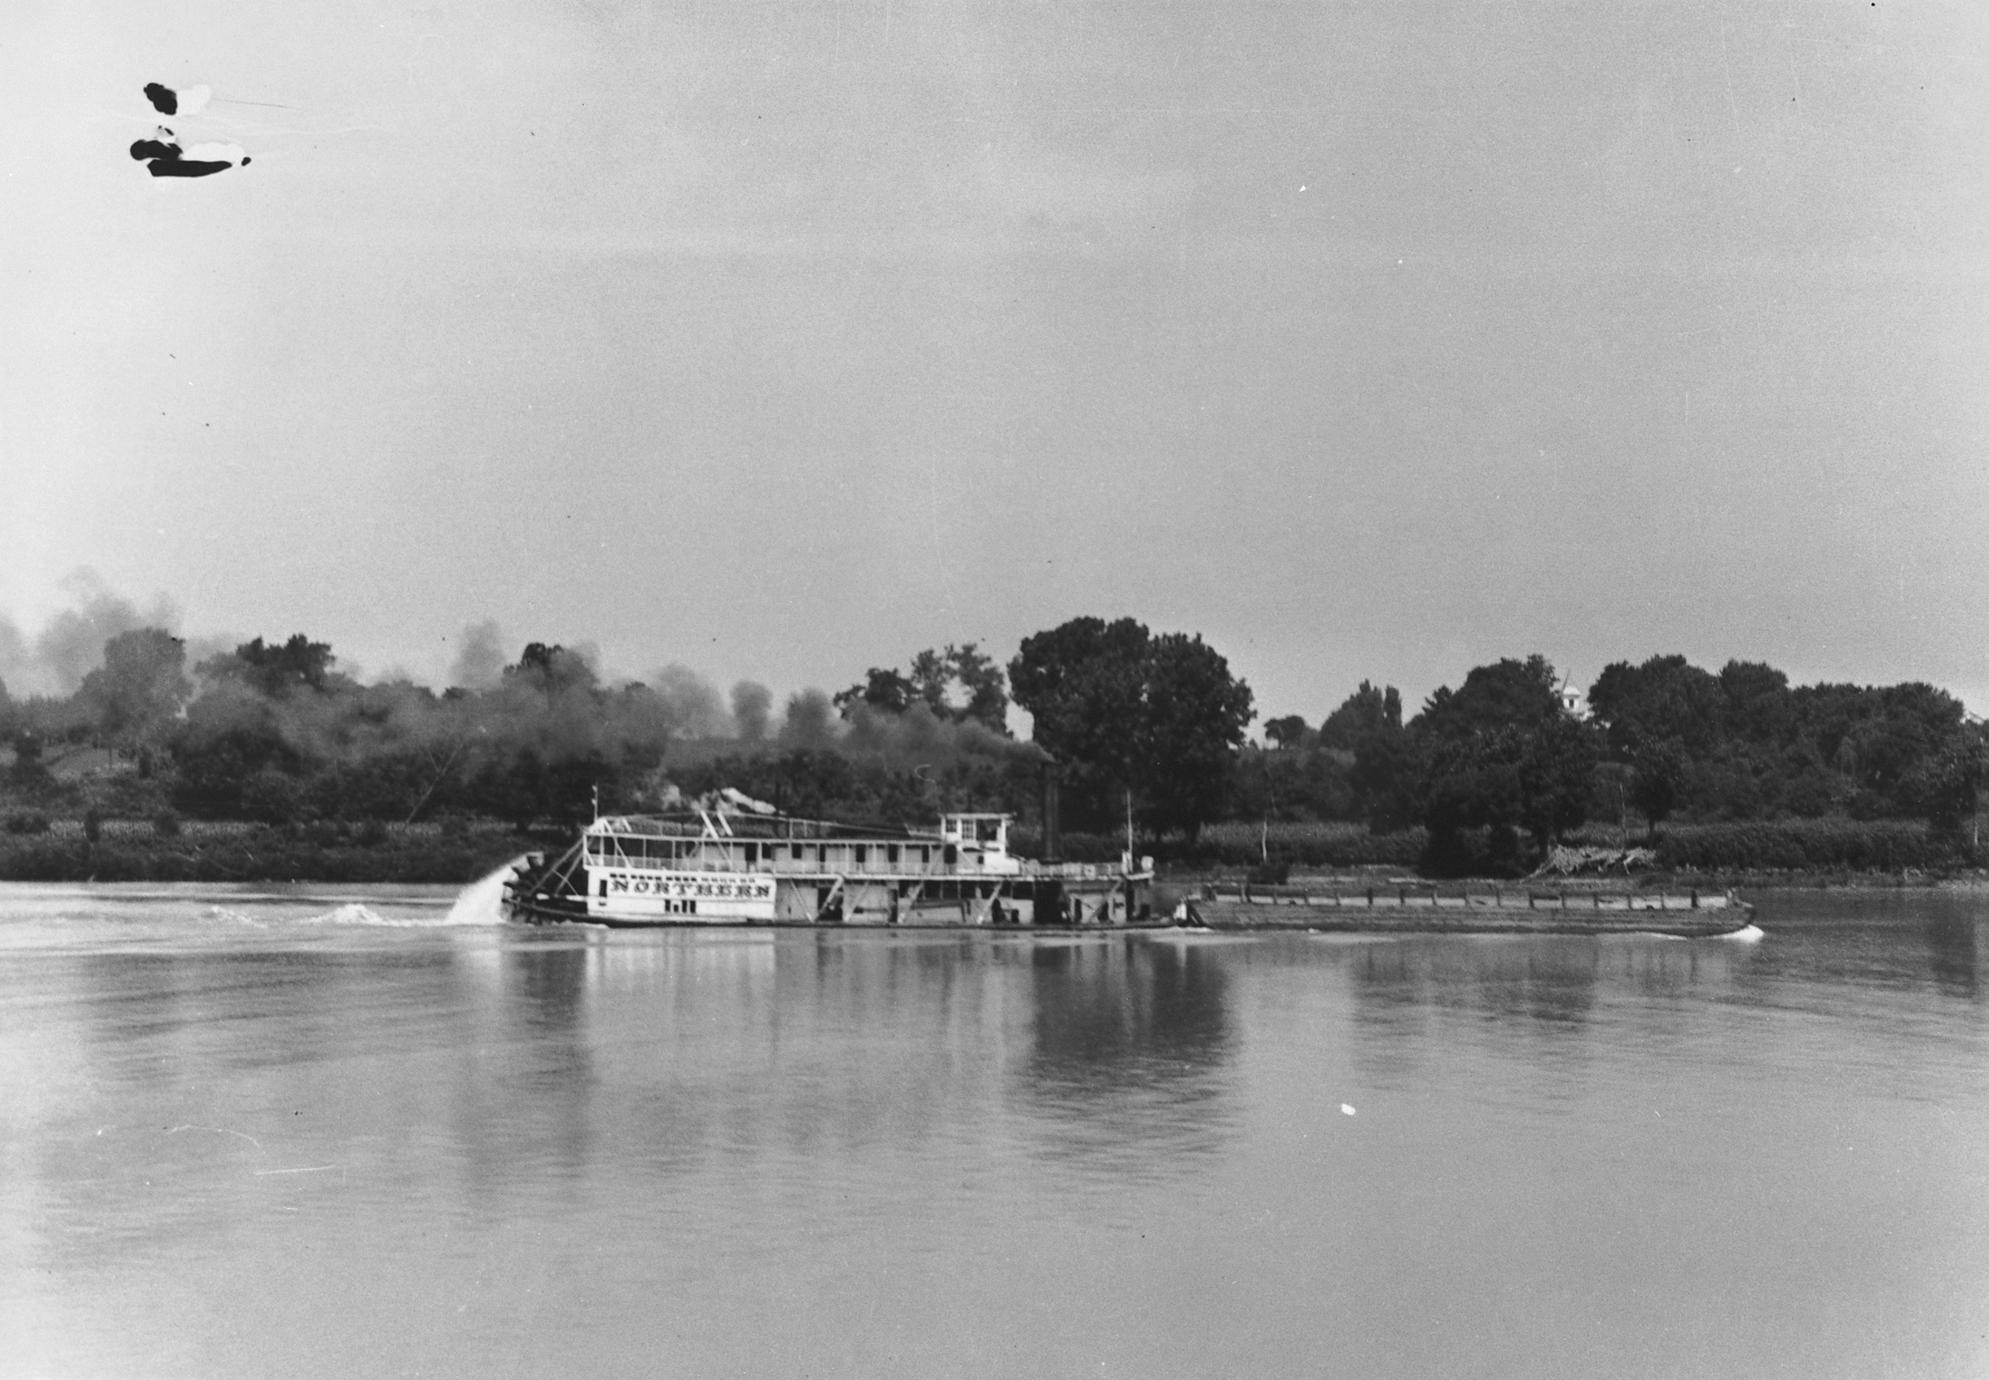 Northern (Towboat, 1909-1936)